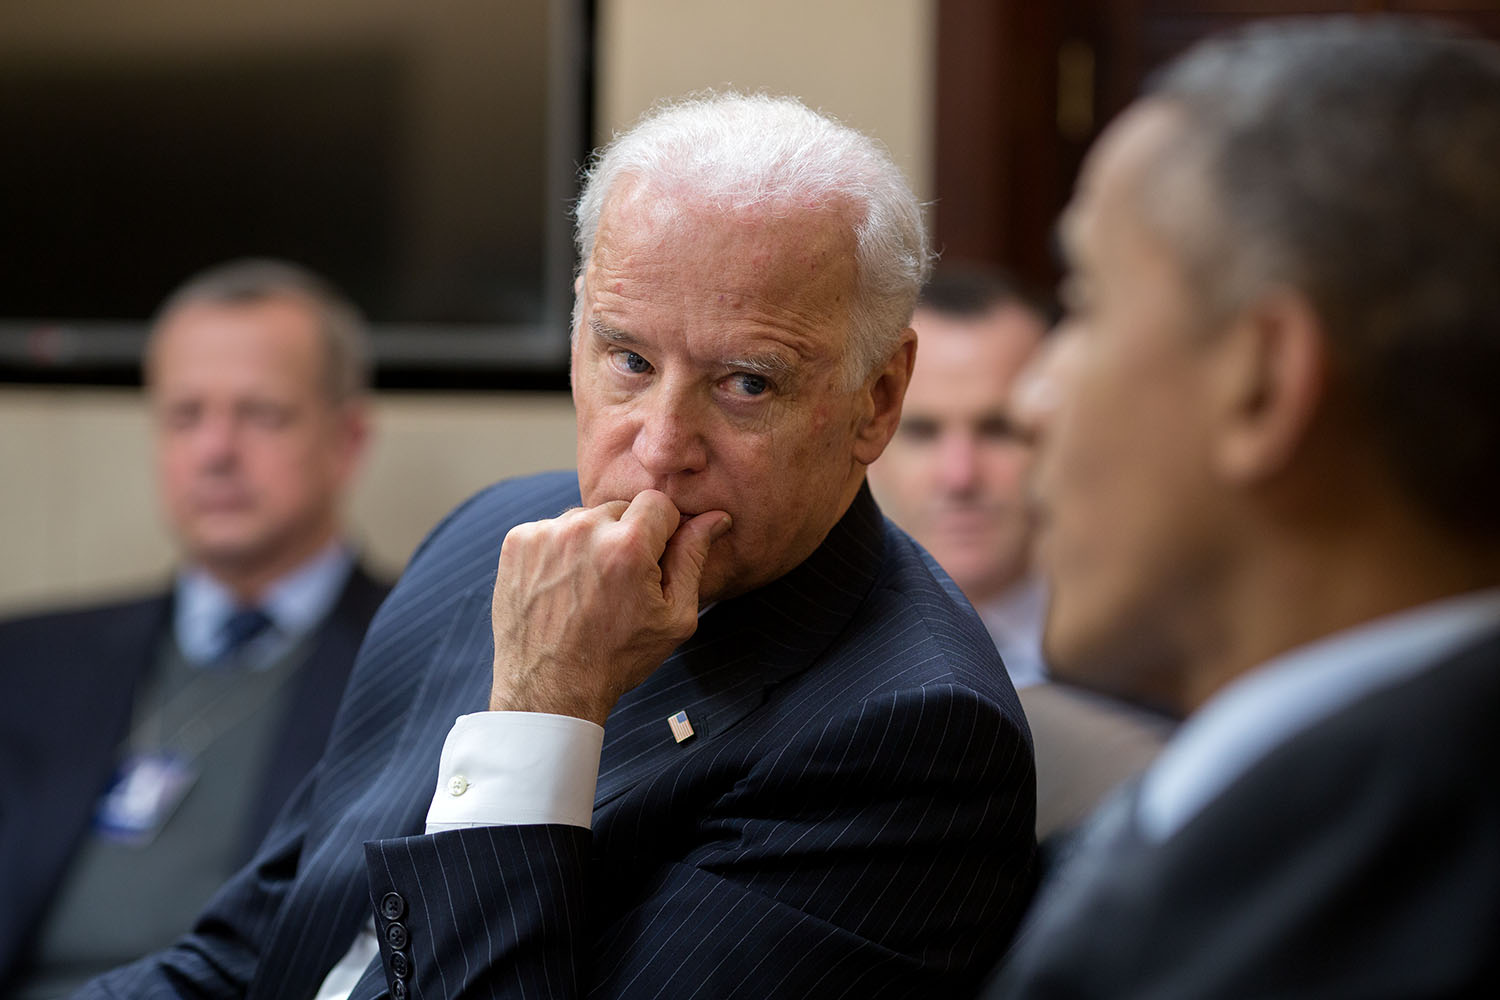 Vice President Joe Biden listens to President Barack Obama during a meeting in the Situation Room of the White House, Feb. 2, 2015.